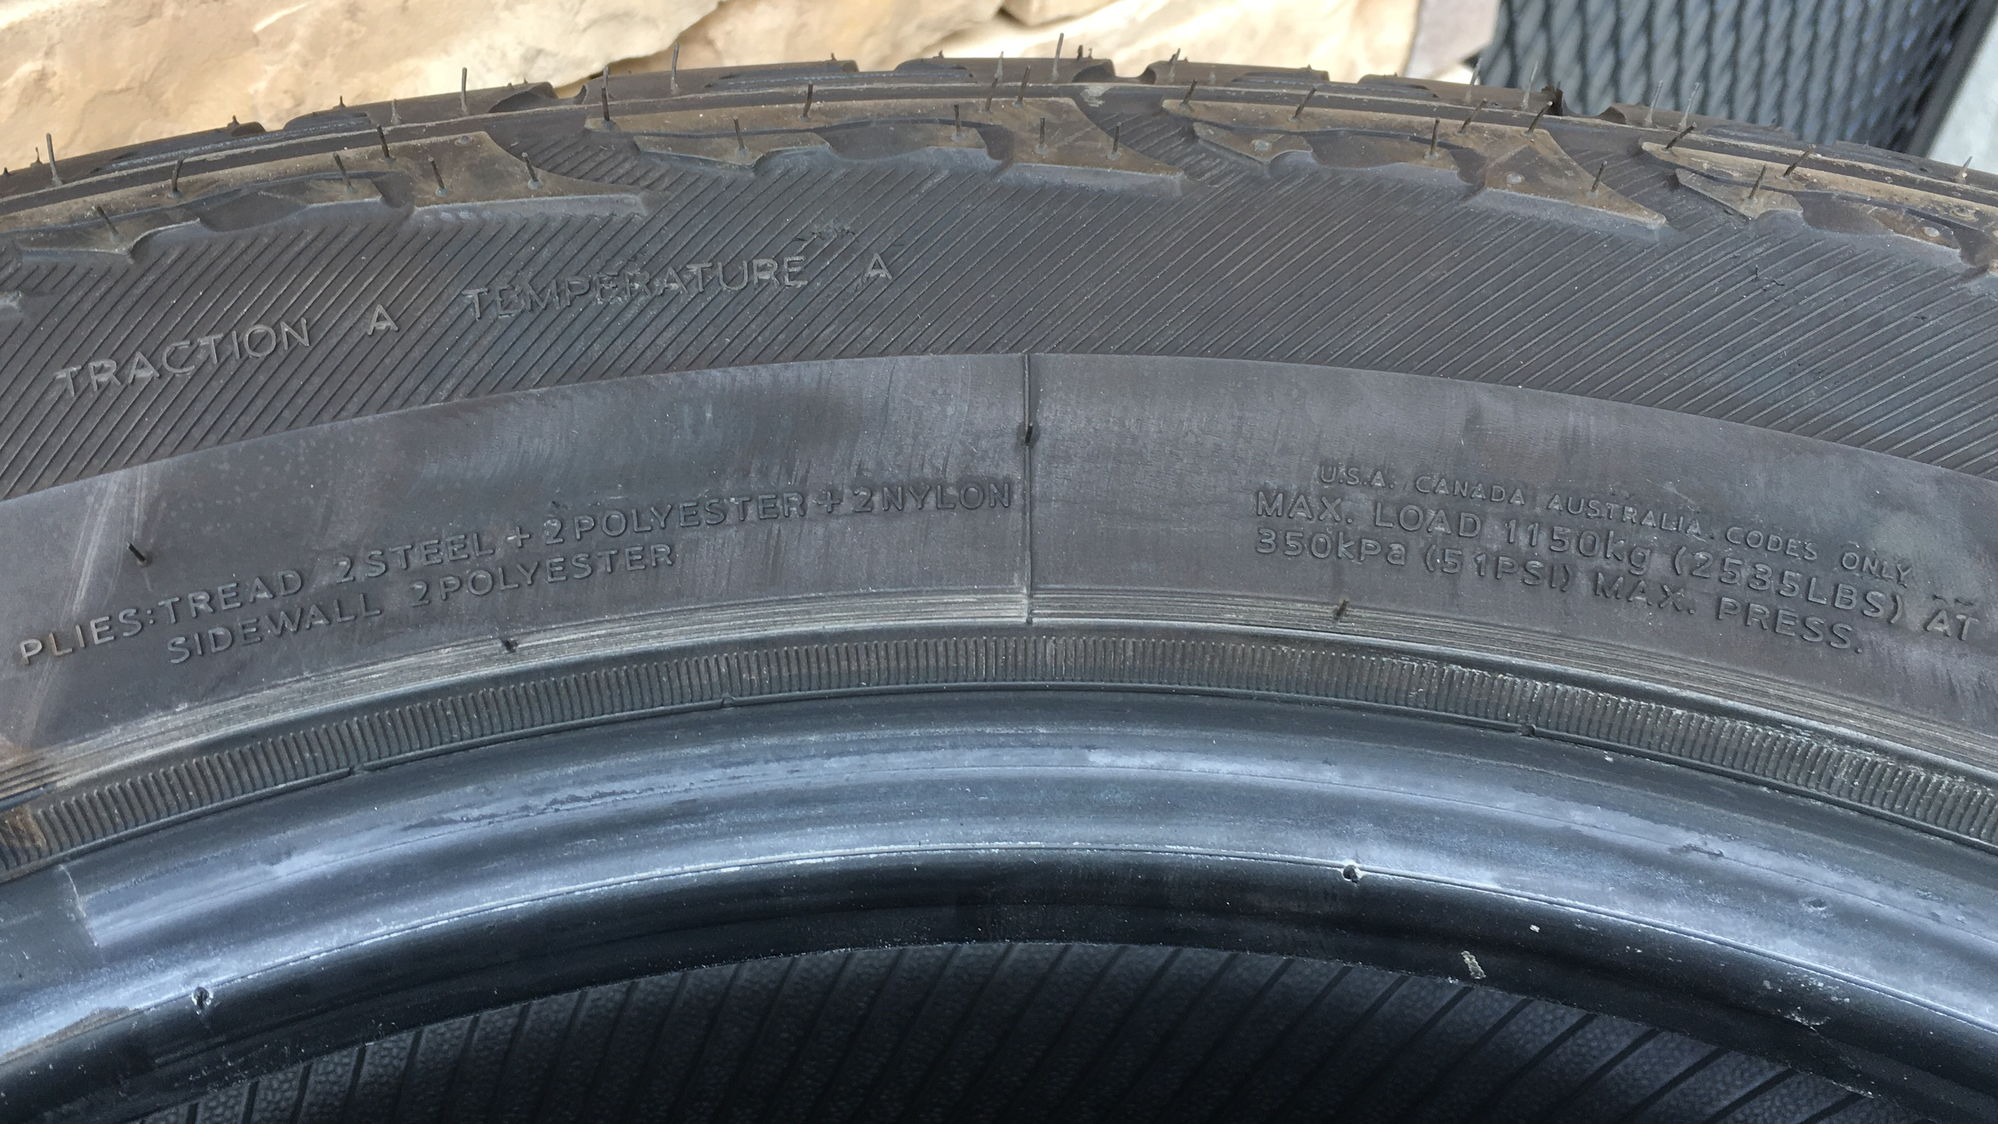 Hankook Dynapro Atm 275 55r20 >> Northeast Four Hankook DynaPro ATM P275/55R20 Tires For Sale! - Ford F150 Forum - Community of ...